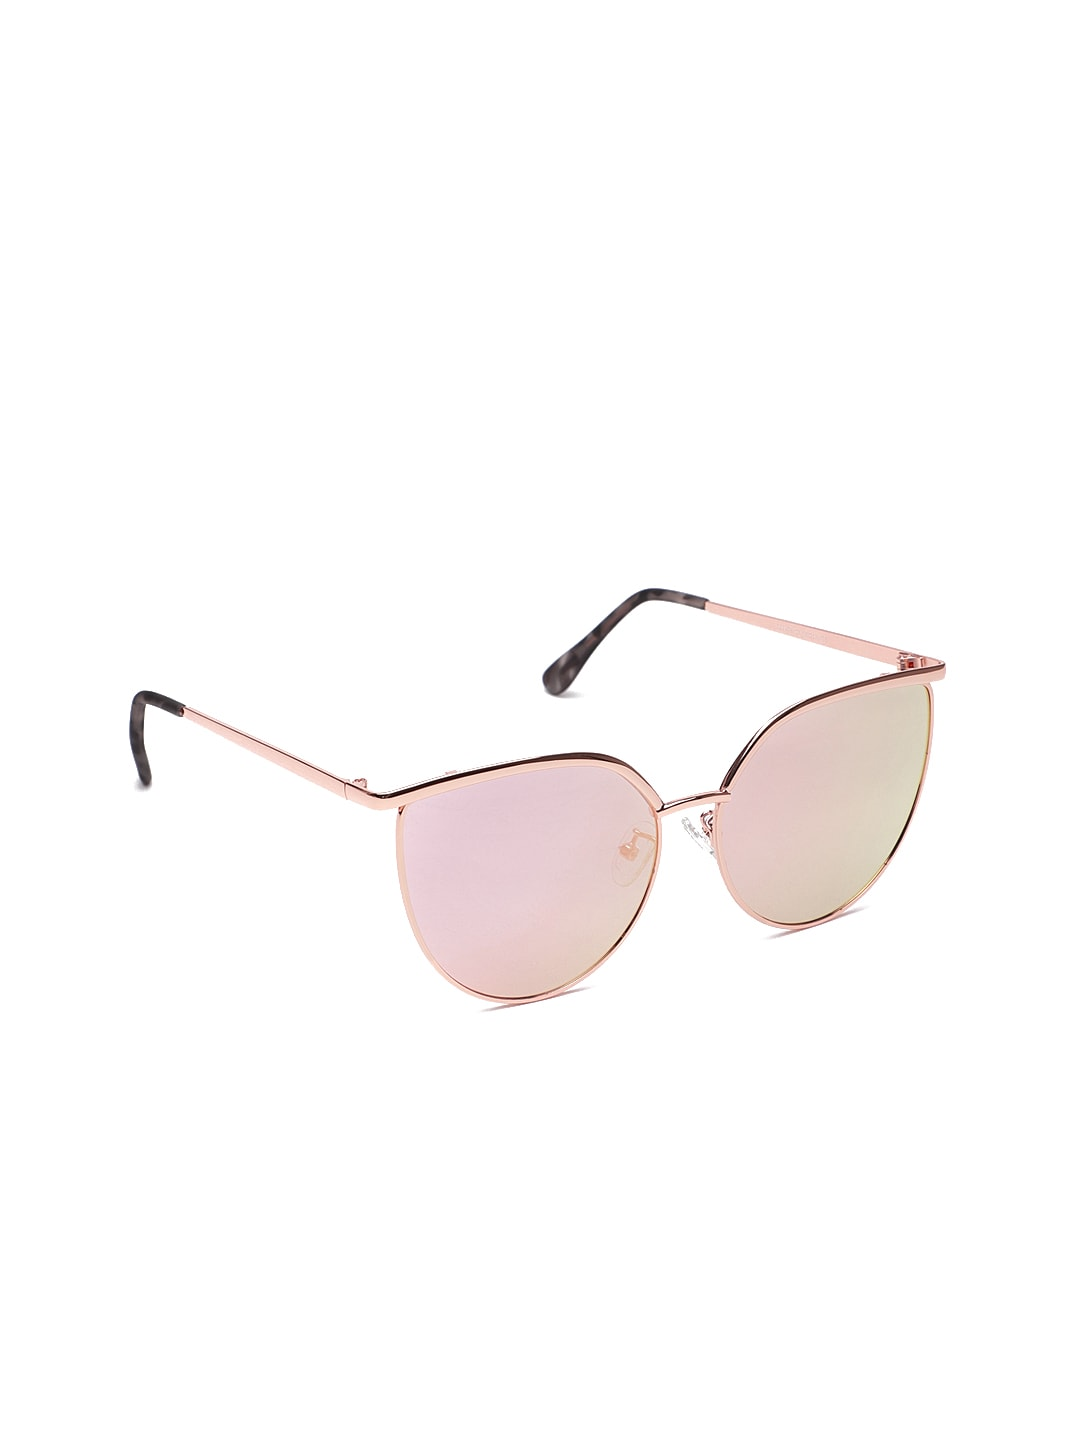 8b24fc0904fd Sunglasses - Buy Shades for Men and Women Online in India